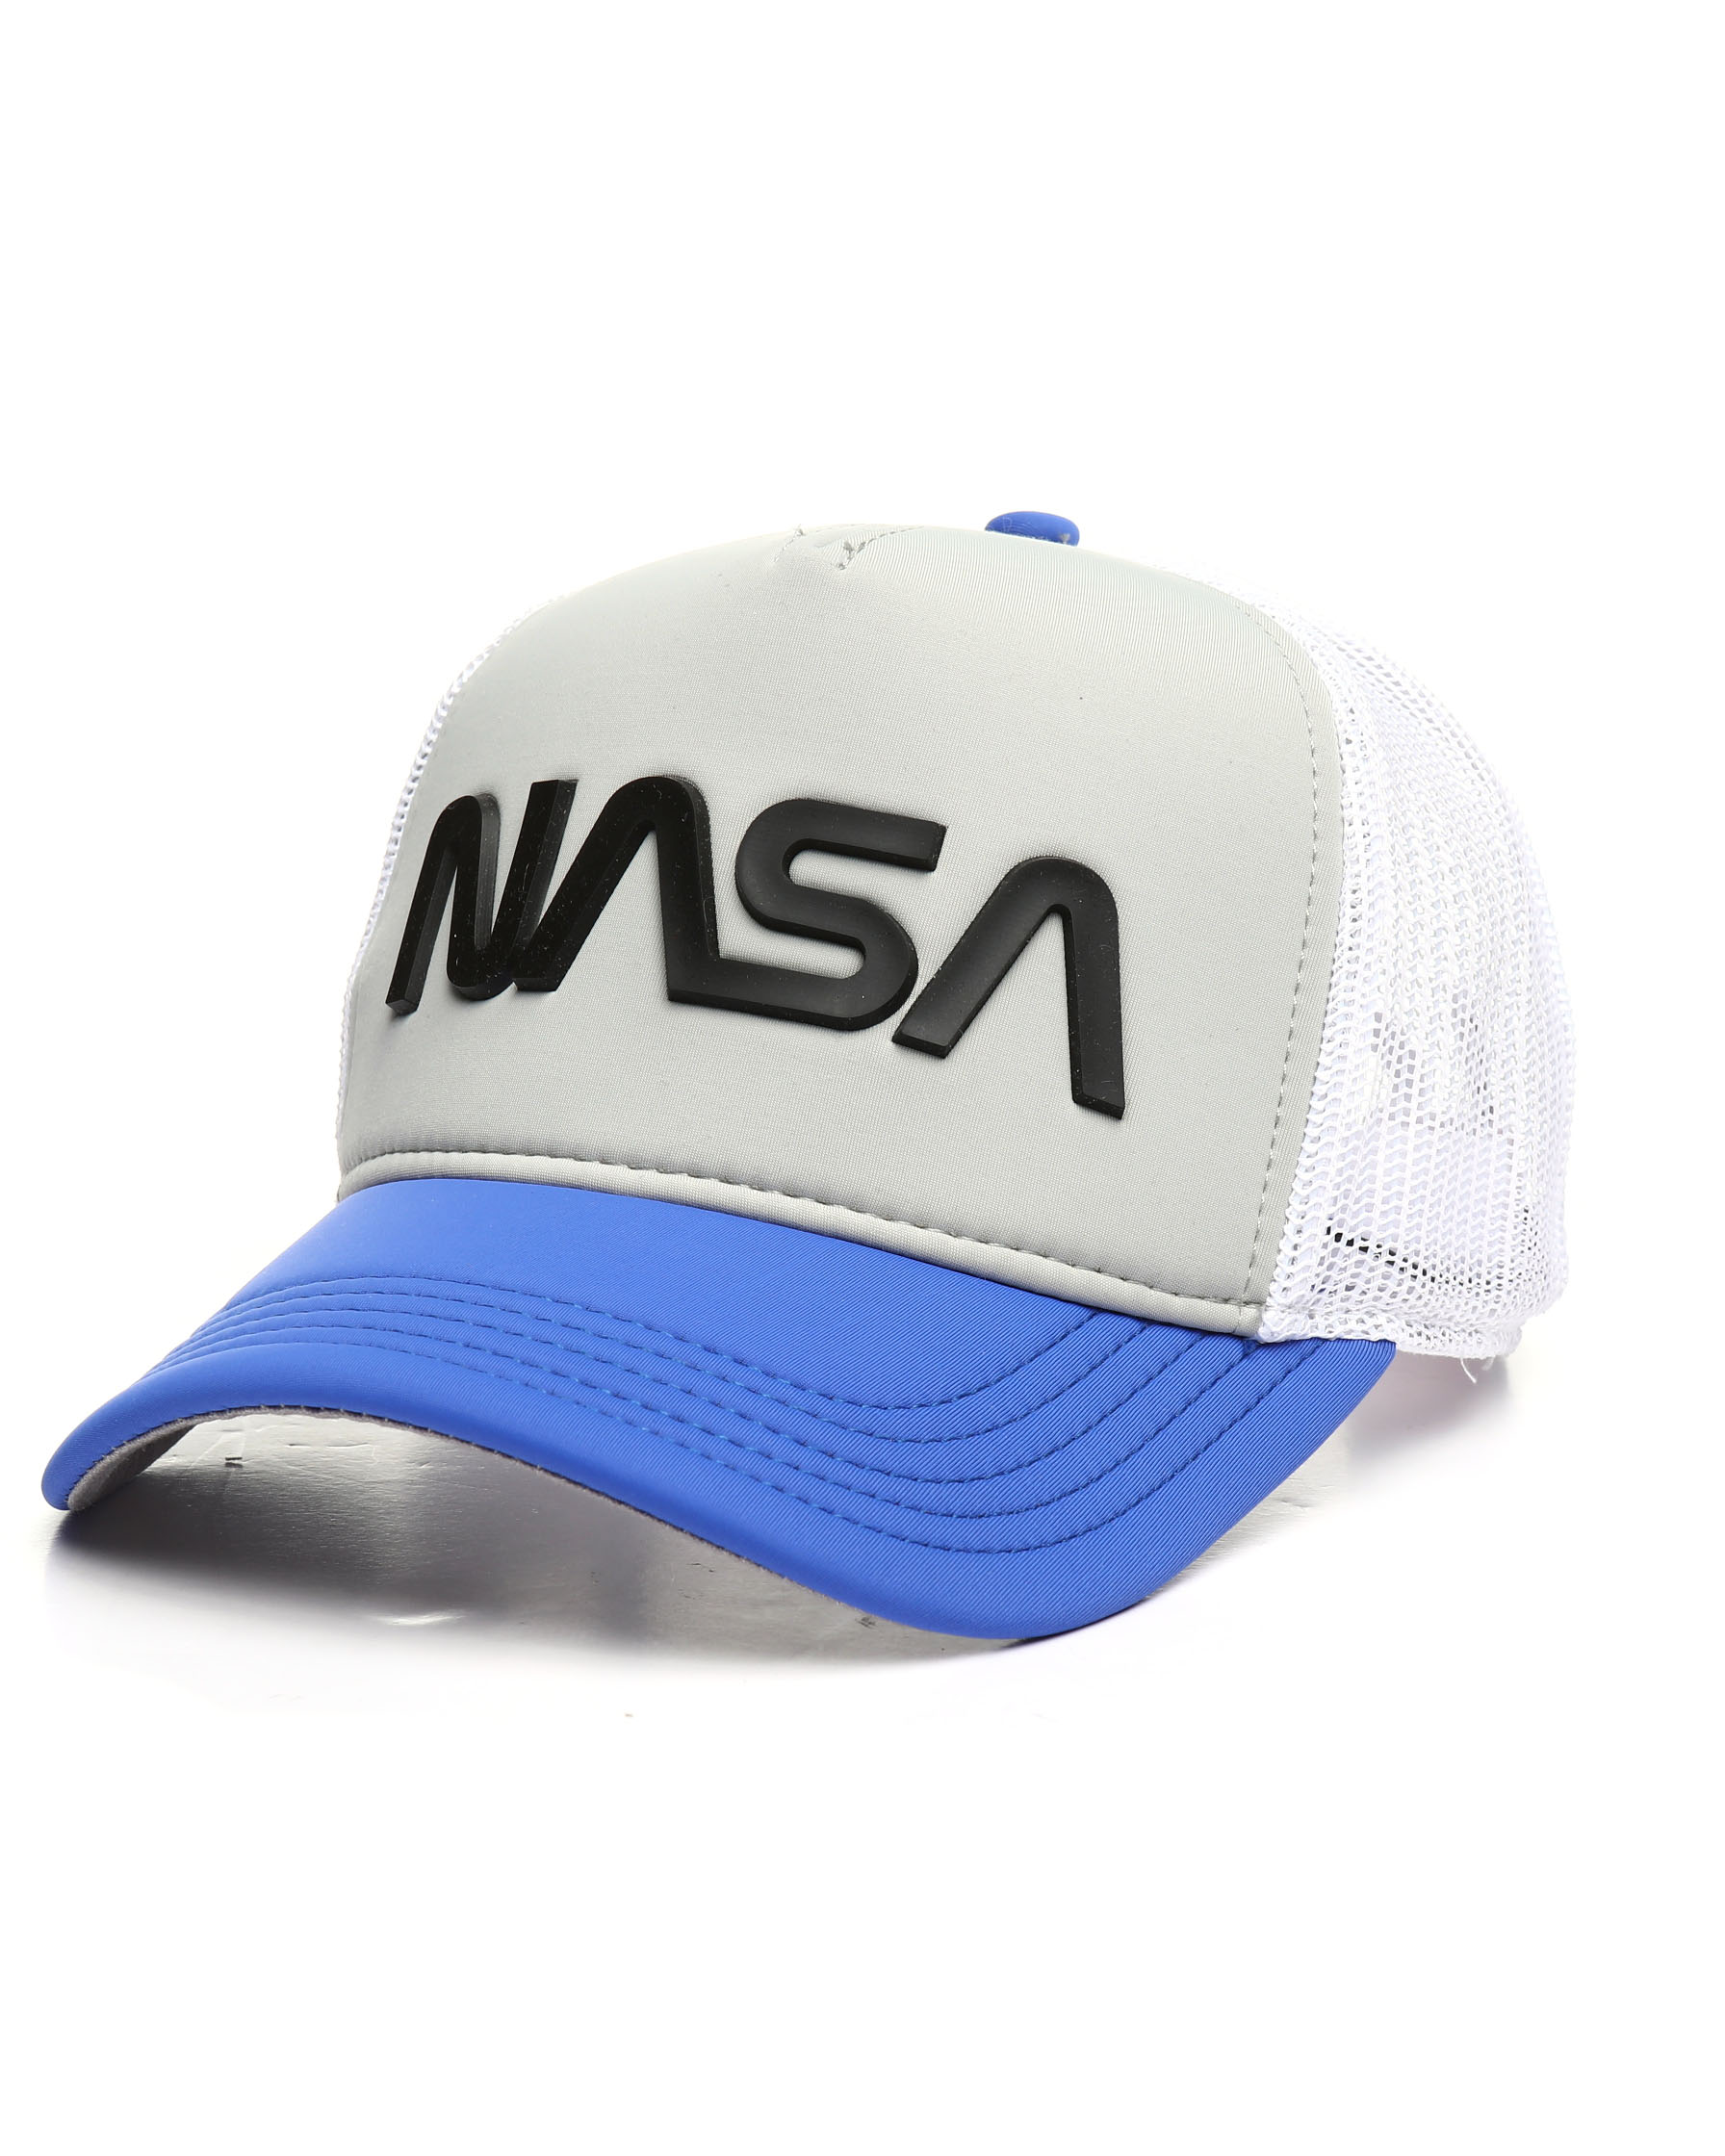 5d0bd6c30 Buy NASA Riptide Valin Hat Men's Hats from American Needle. Find ...